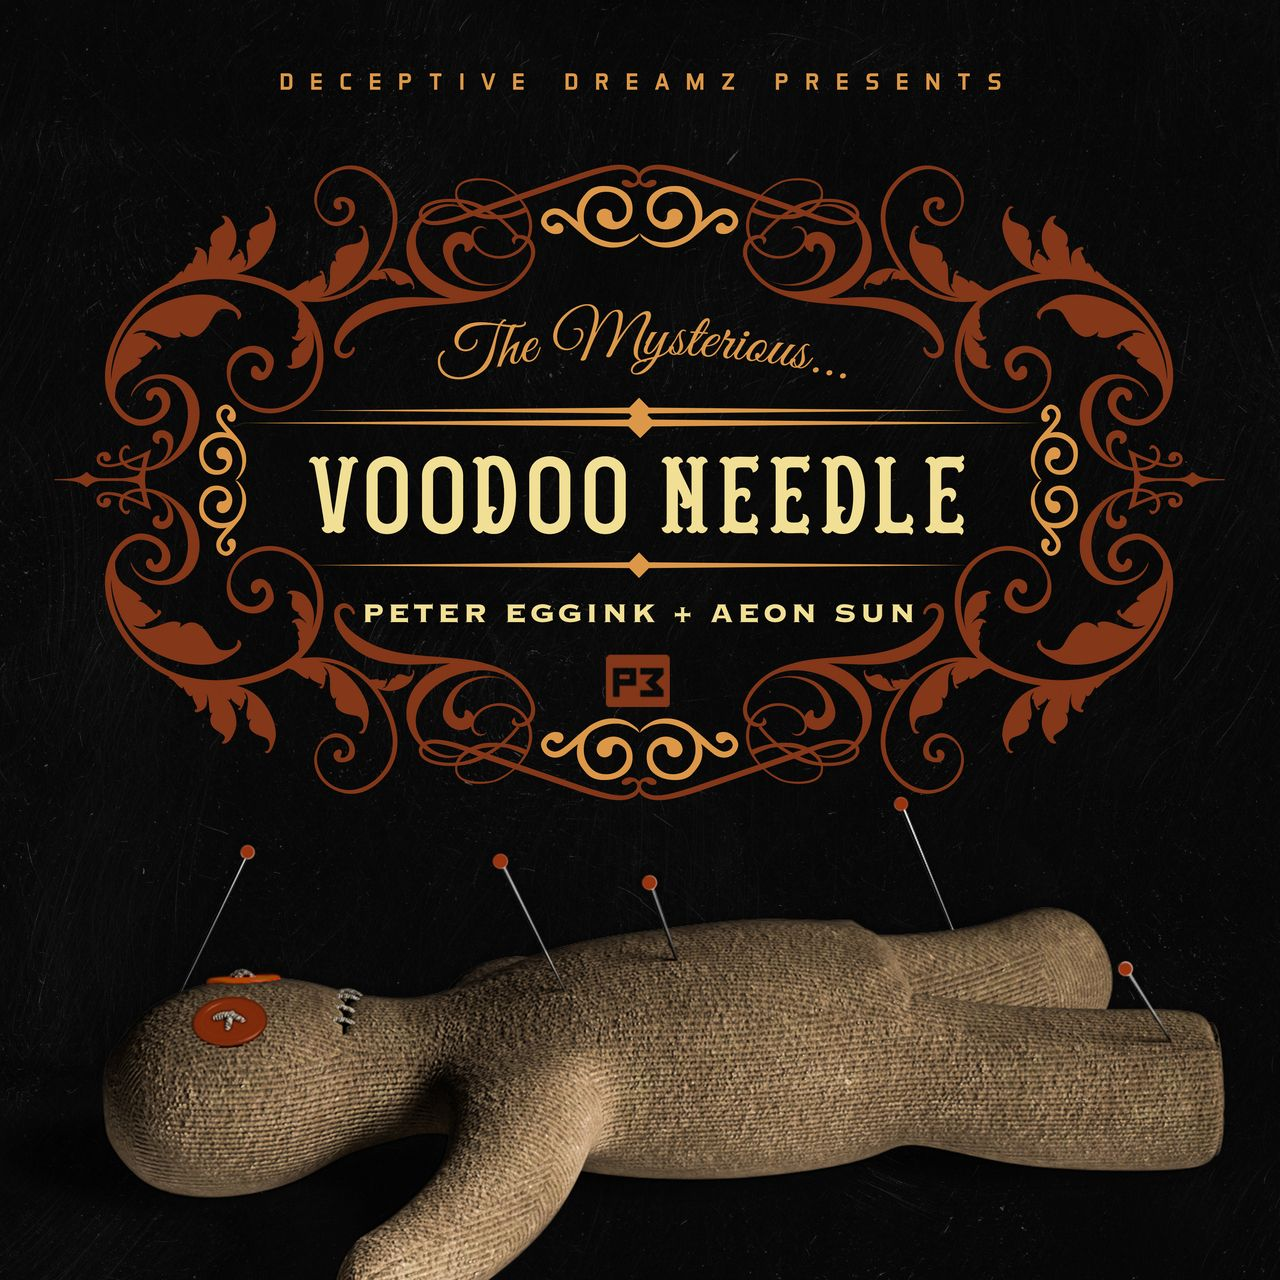 Voodoo Needle by Peter Eggink & Aeon Sun